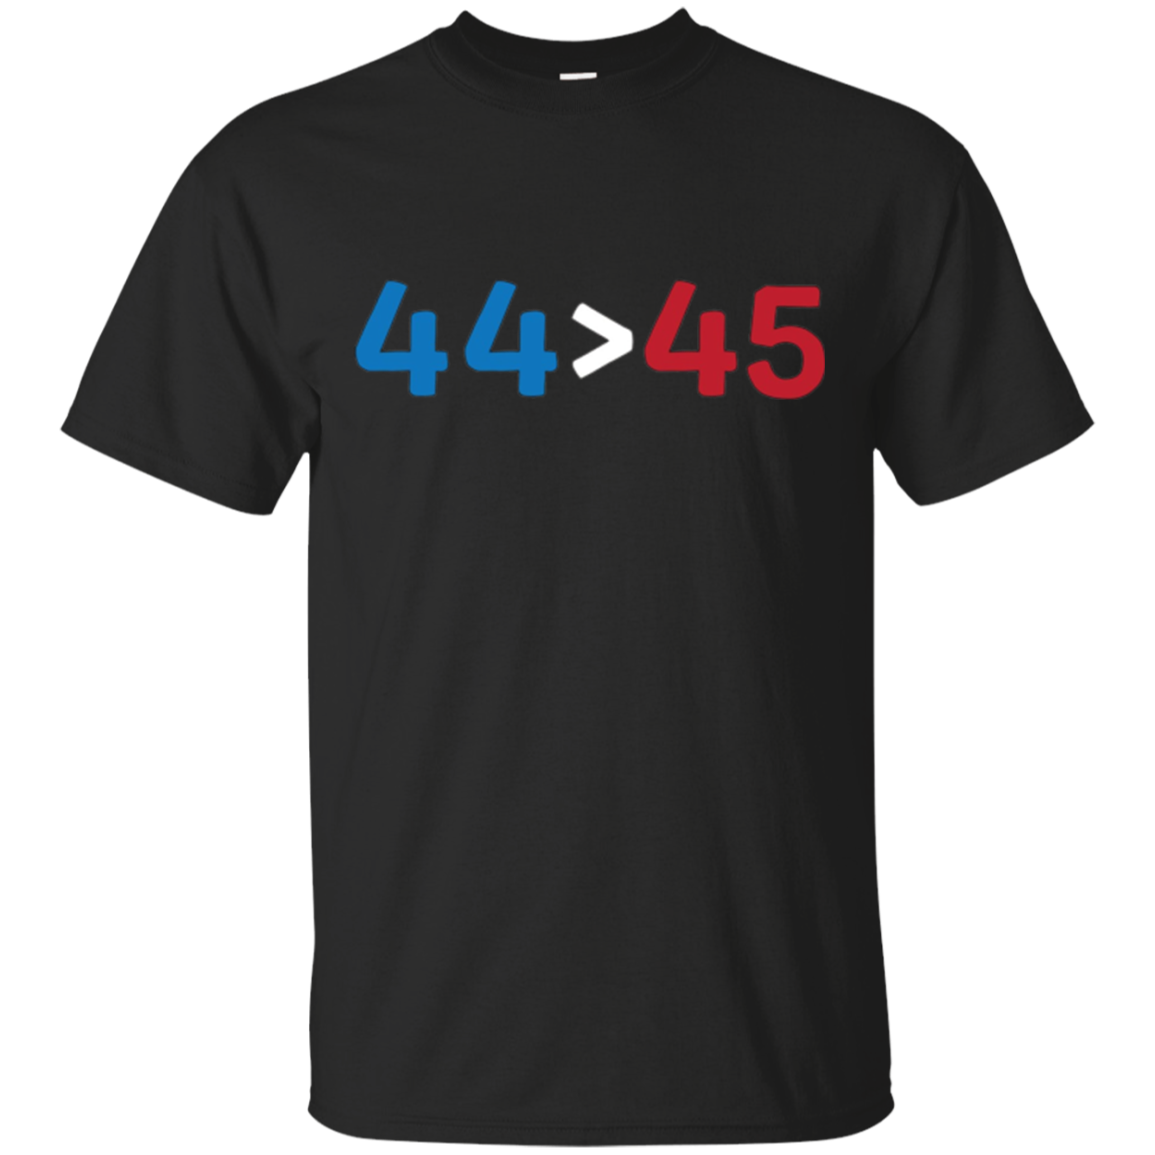 44 Greater Than 45 President Obama anti-trump politcal shirt